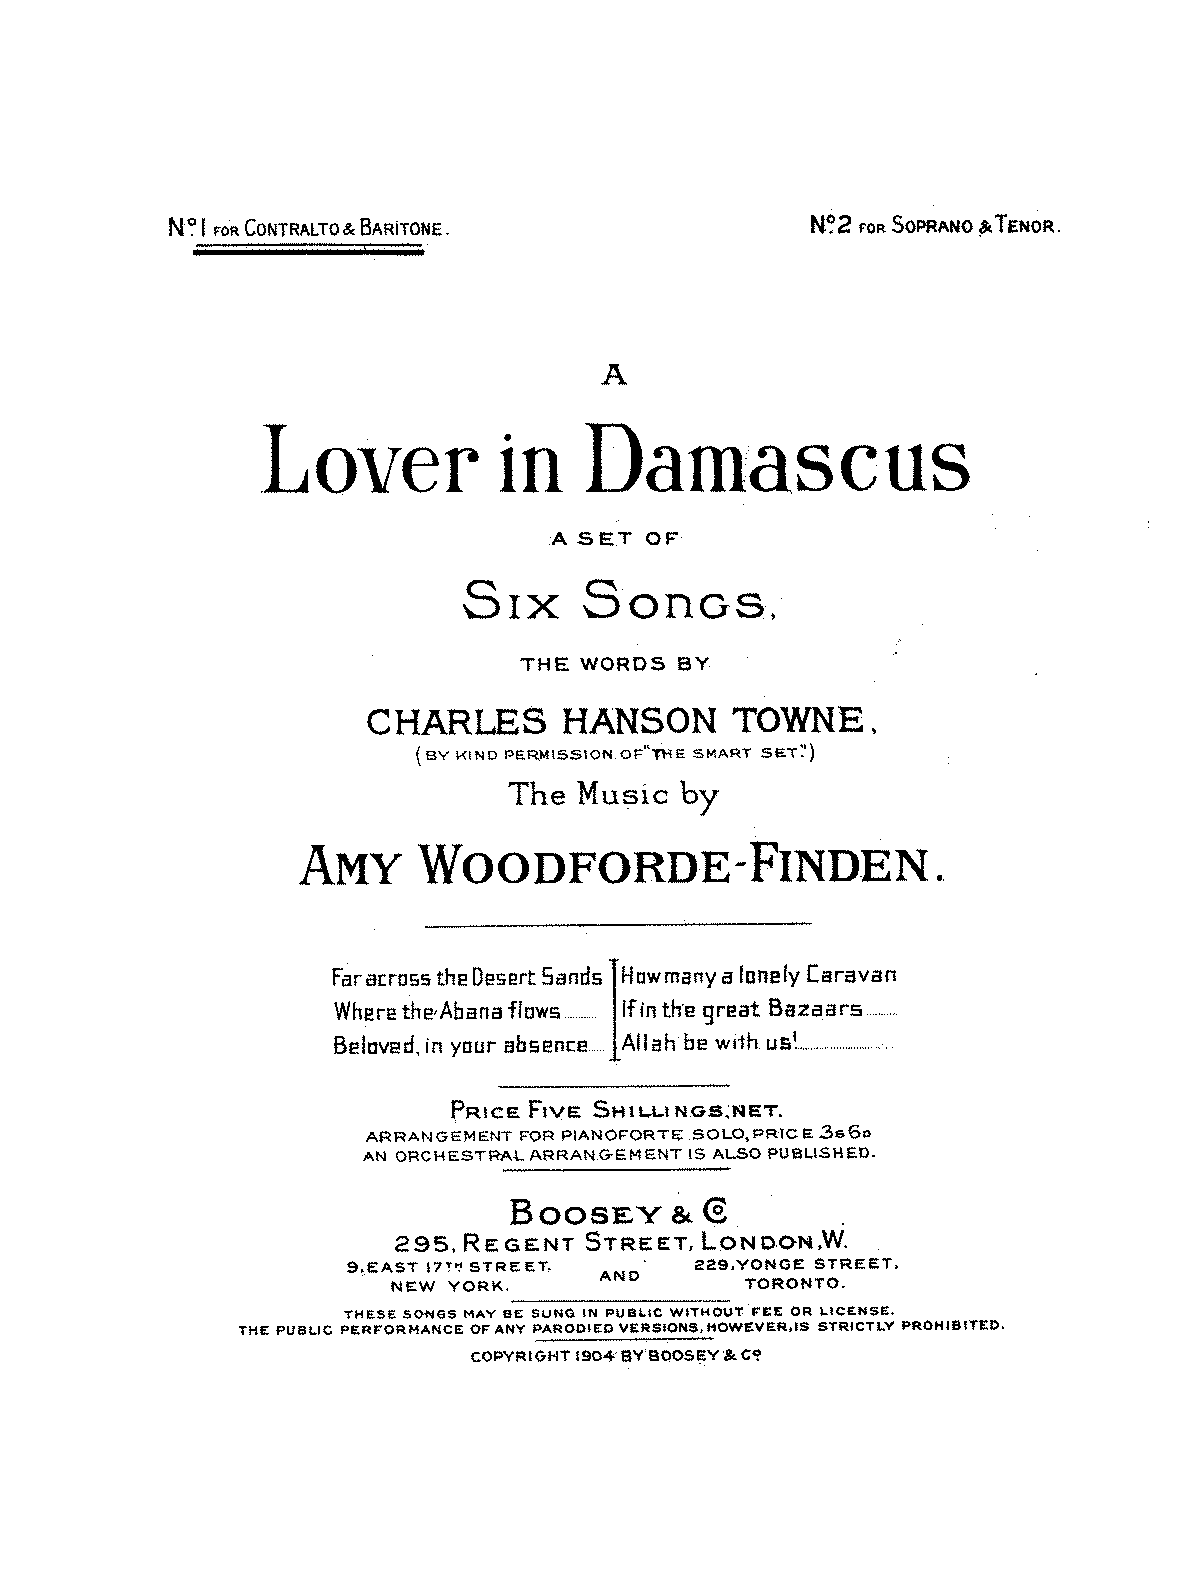 PMLP183032-Woodforde-Finden A Lover in Damascus.pdf